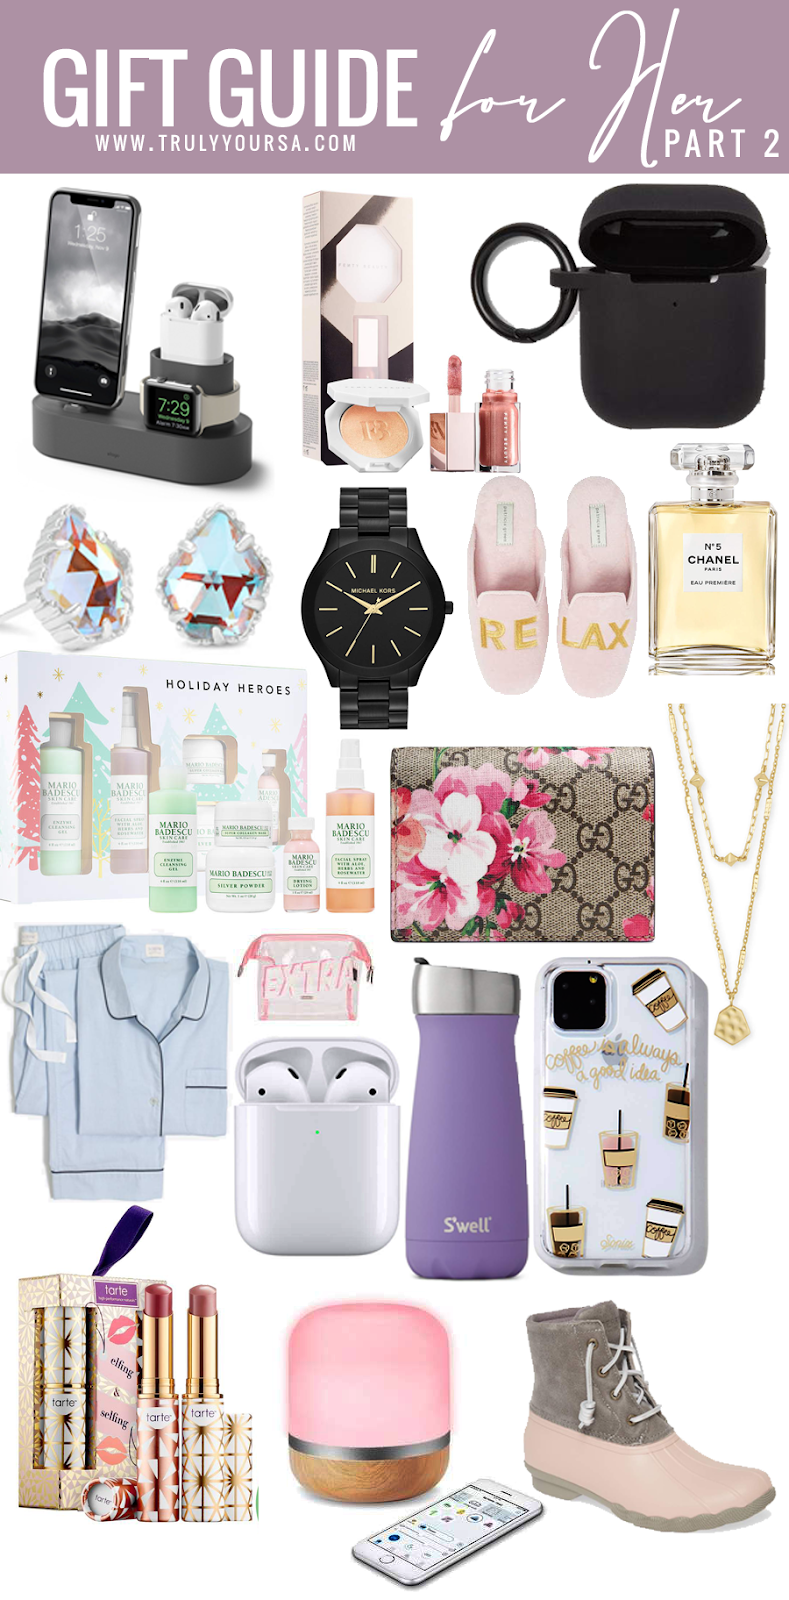 We officially have 36 days left until Christmas! I'm trying to get my Christmas shopping done early this year and that inspired me to get this gift guide up ASAP for y'all. If you're still looking for the perfect gift for any ladies in your life I hope this gift guide can give you a few ideas. If you want more ideas check out my first gift guide for her, a lot of the items are still available! #giftguideforher #giftideasforher #giftguide #giftguide2019